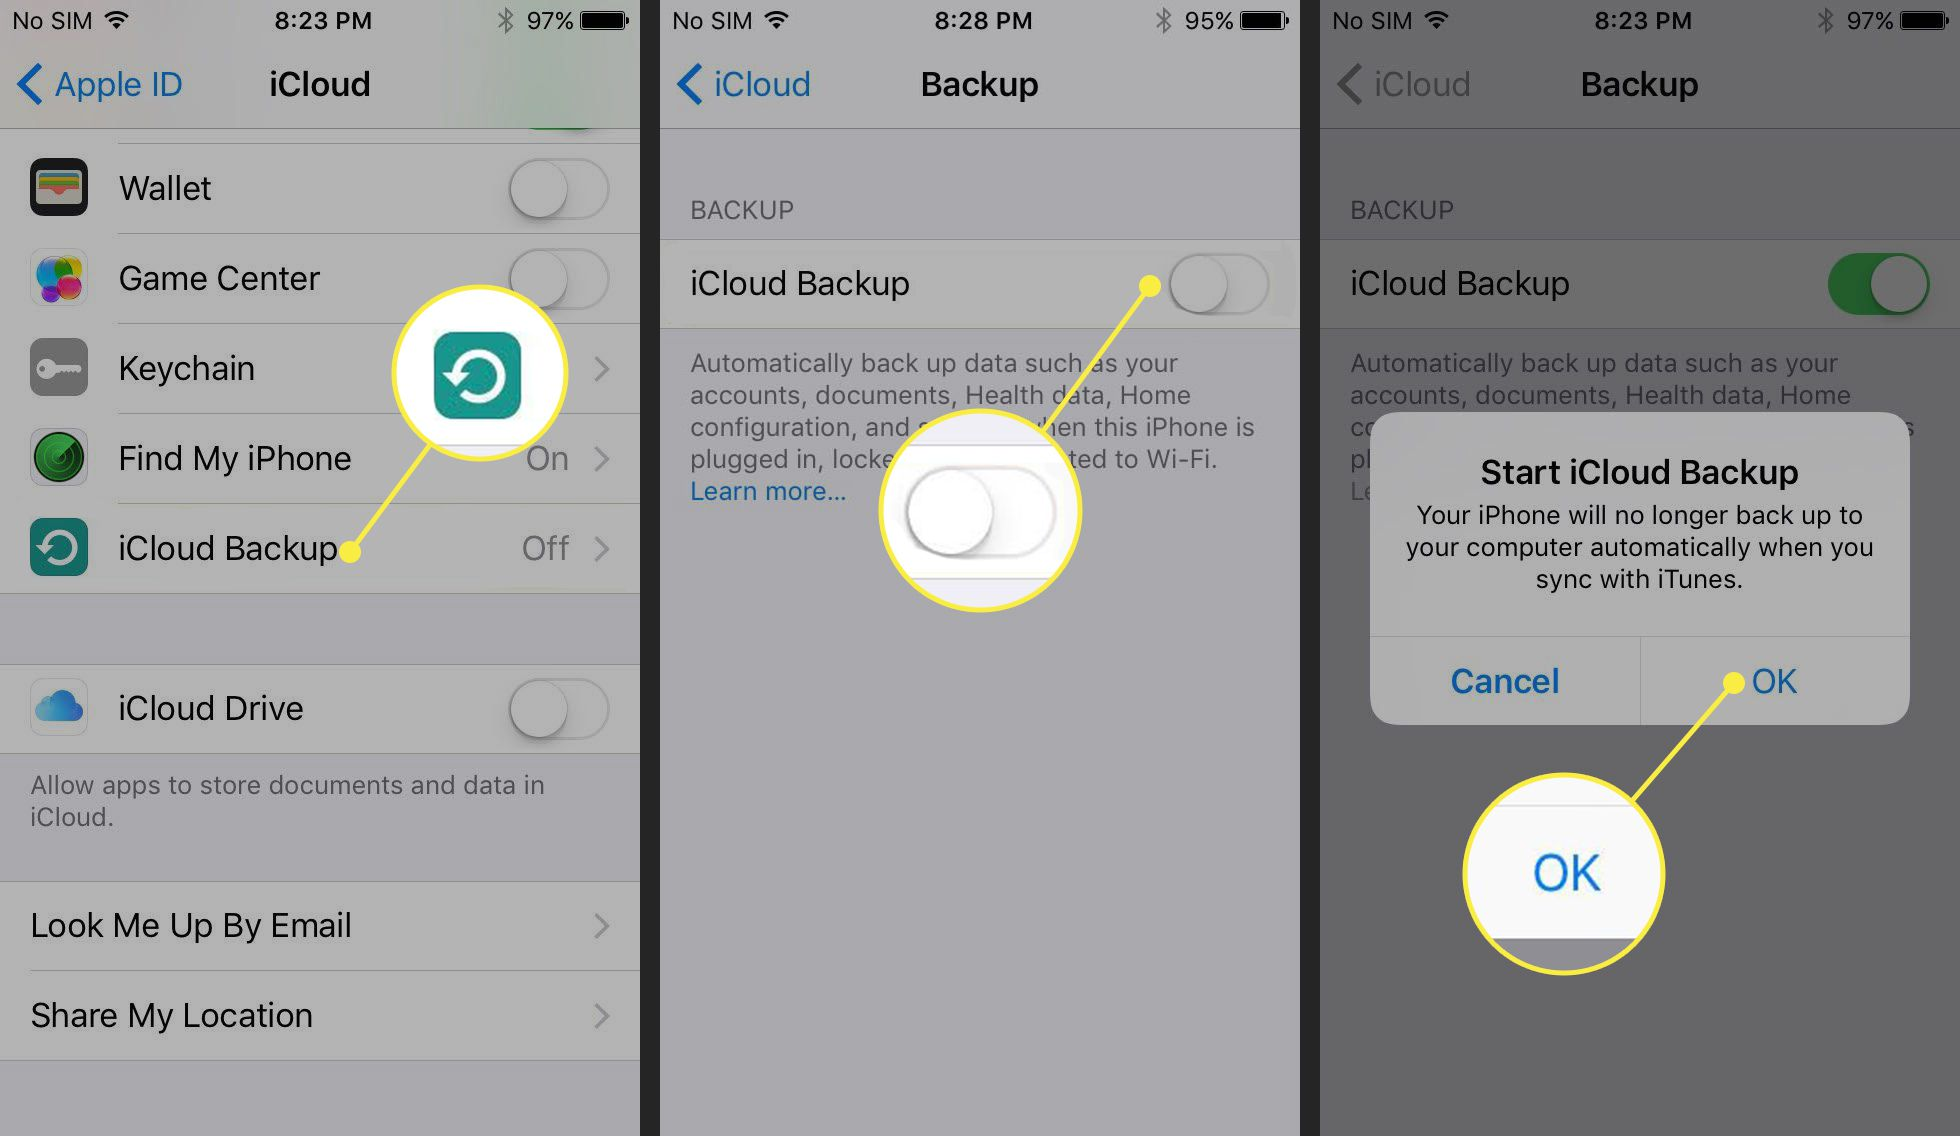 Turning on iCloud Backup on an iPhone